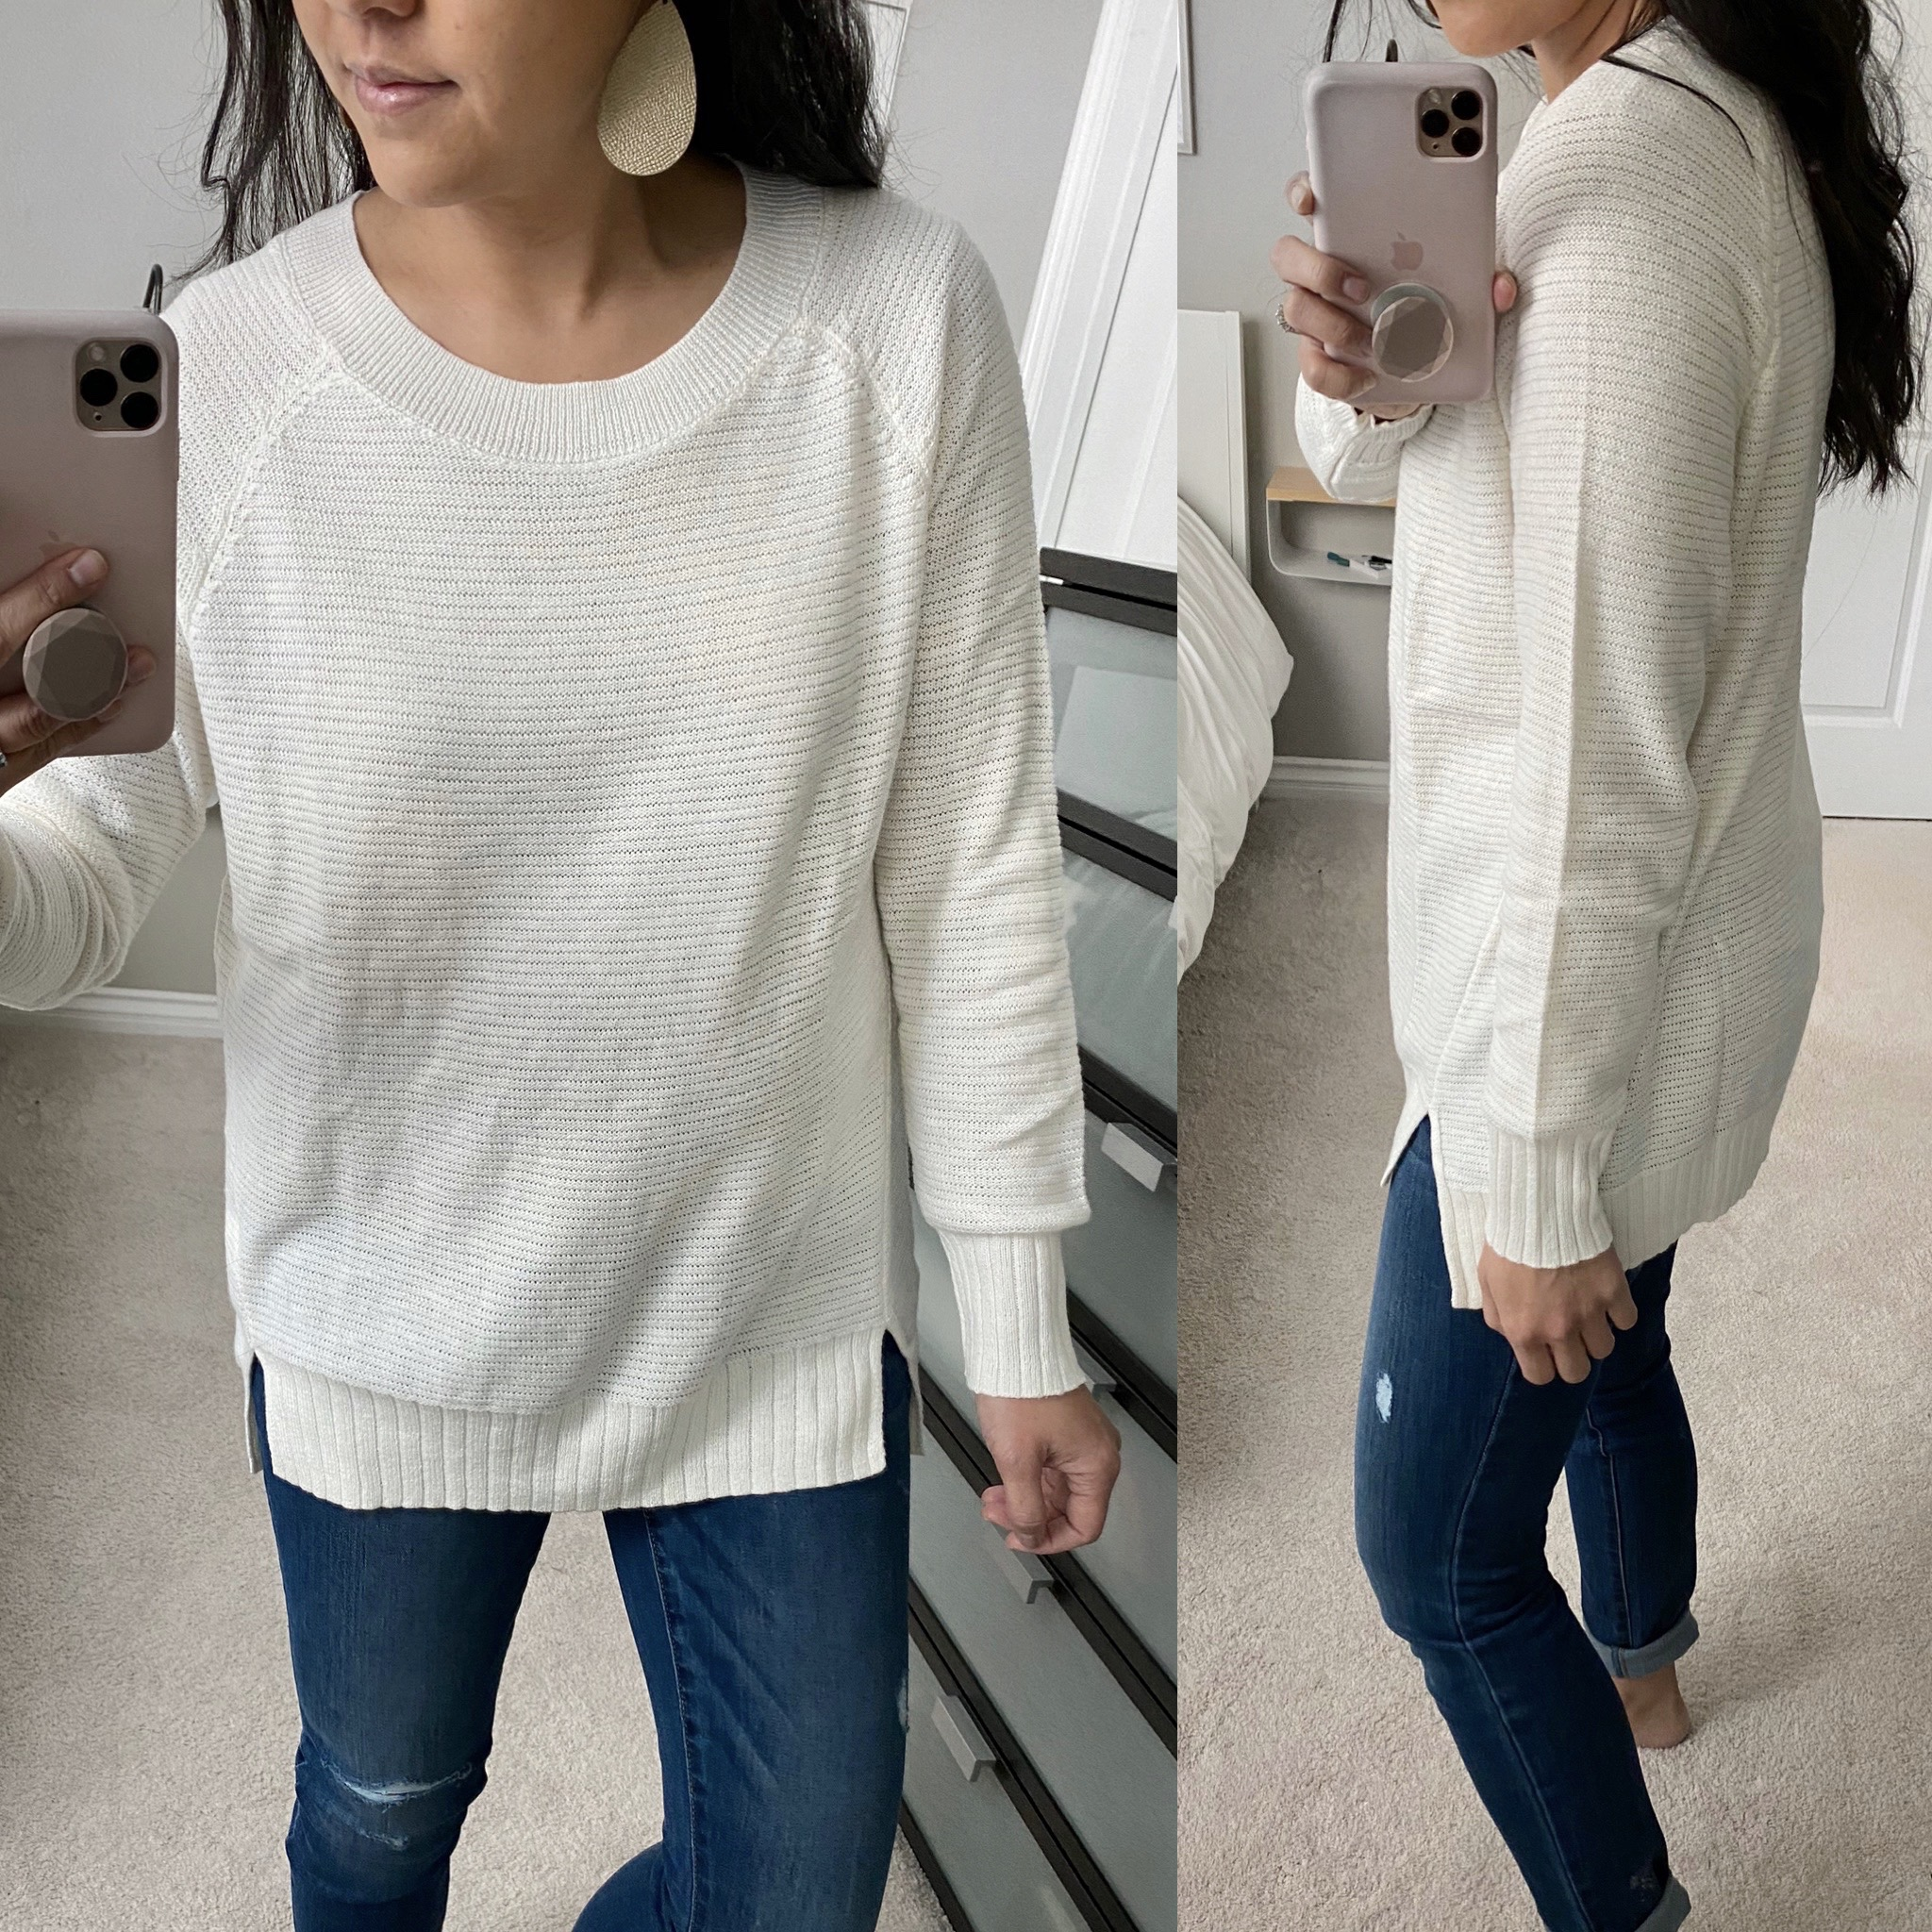 Casual Winter Outfit: maternity skinny jeans + cream tunic sweater + gold leather earrings